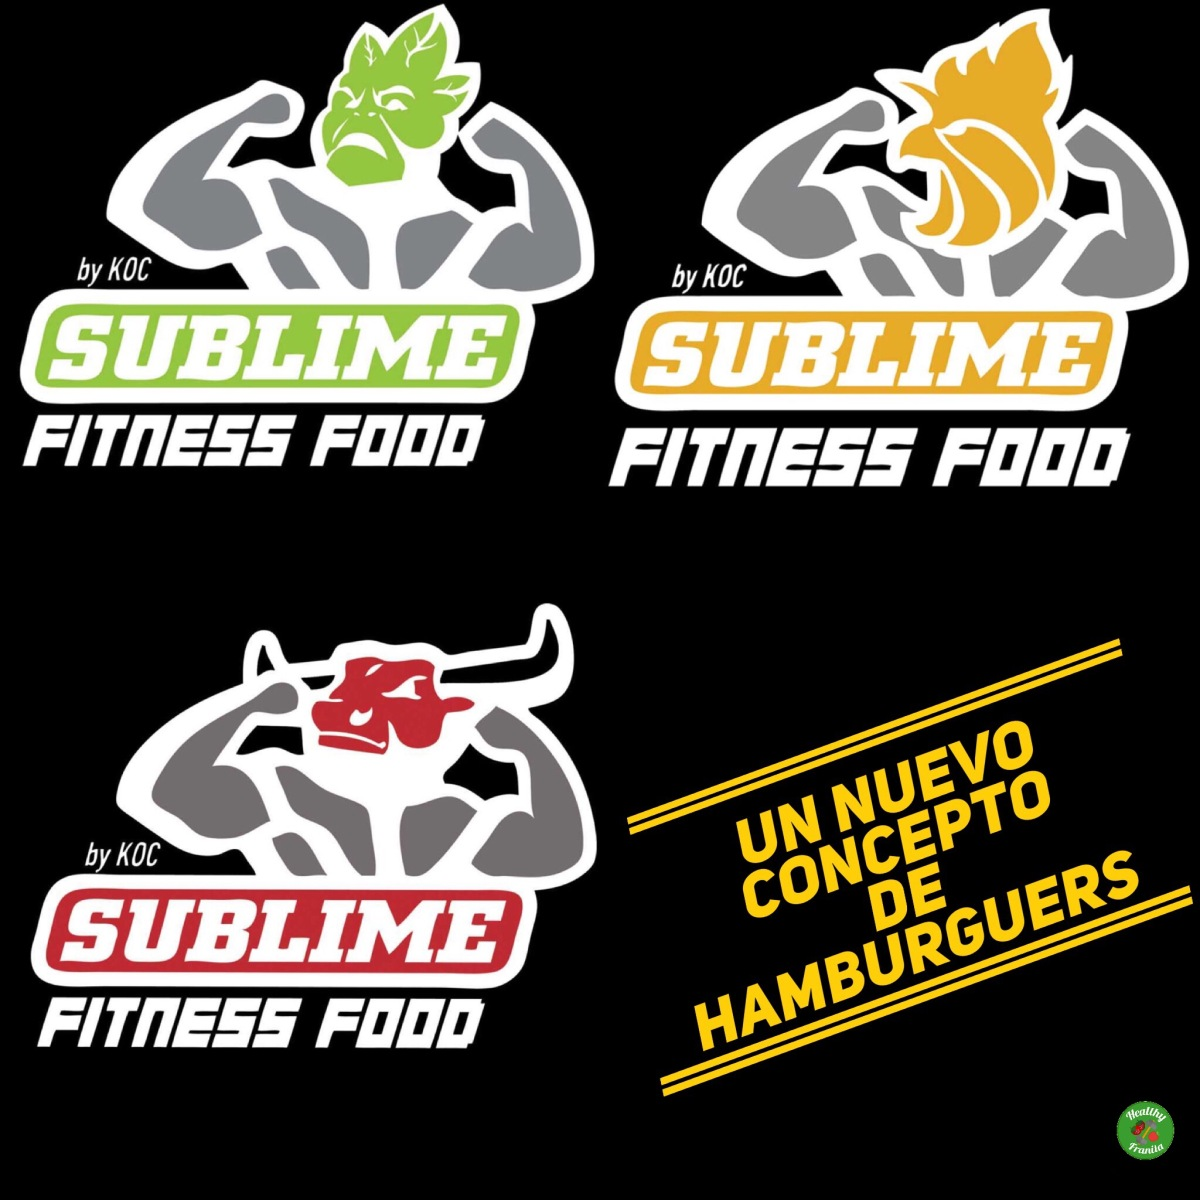 SUBLIME FITNESS FOOD: UN NUEVO CONCEPTO DE HAMBURGUERS